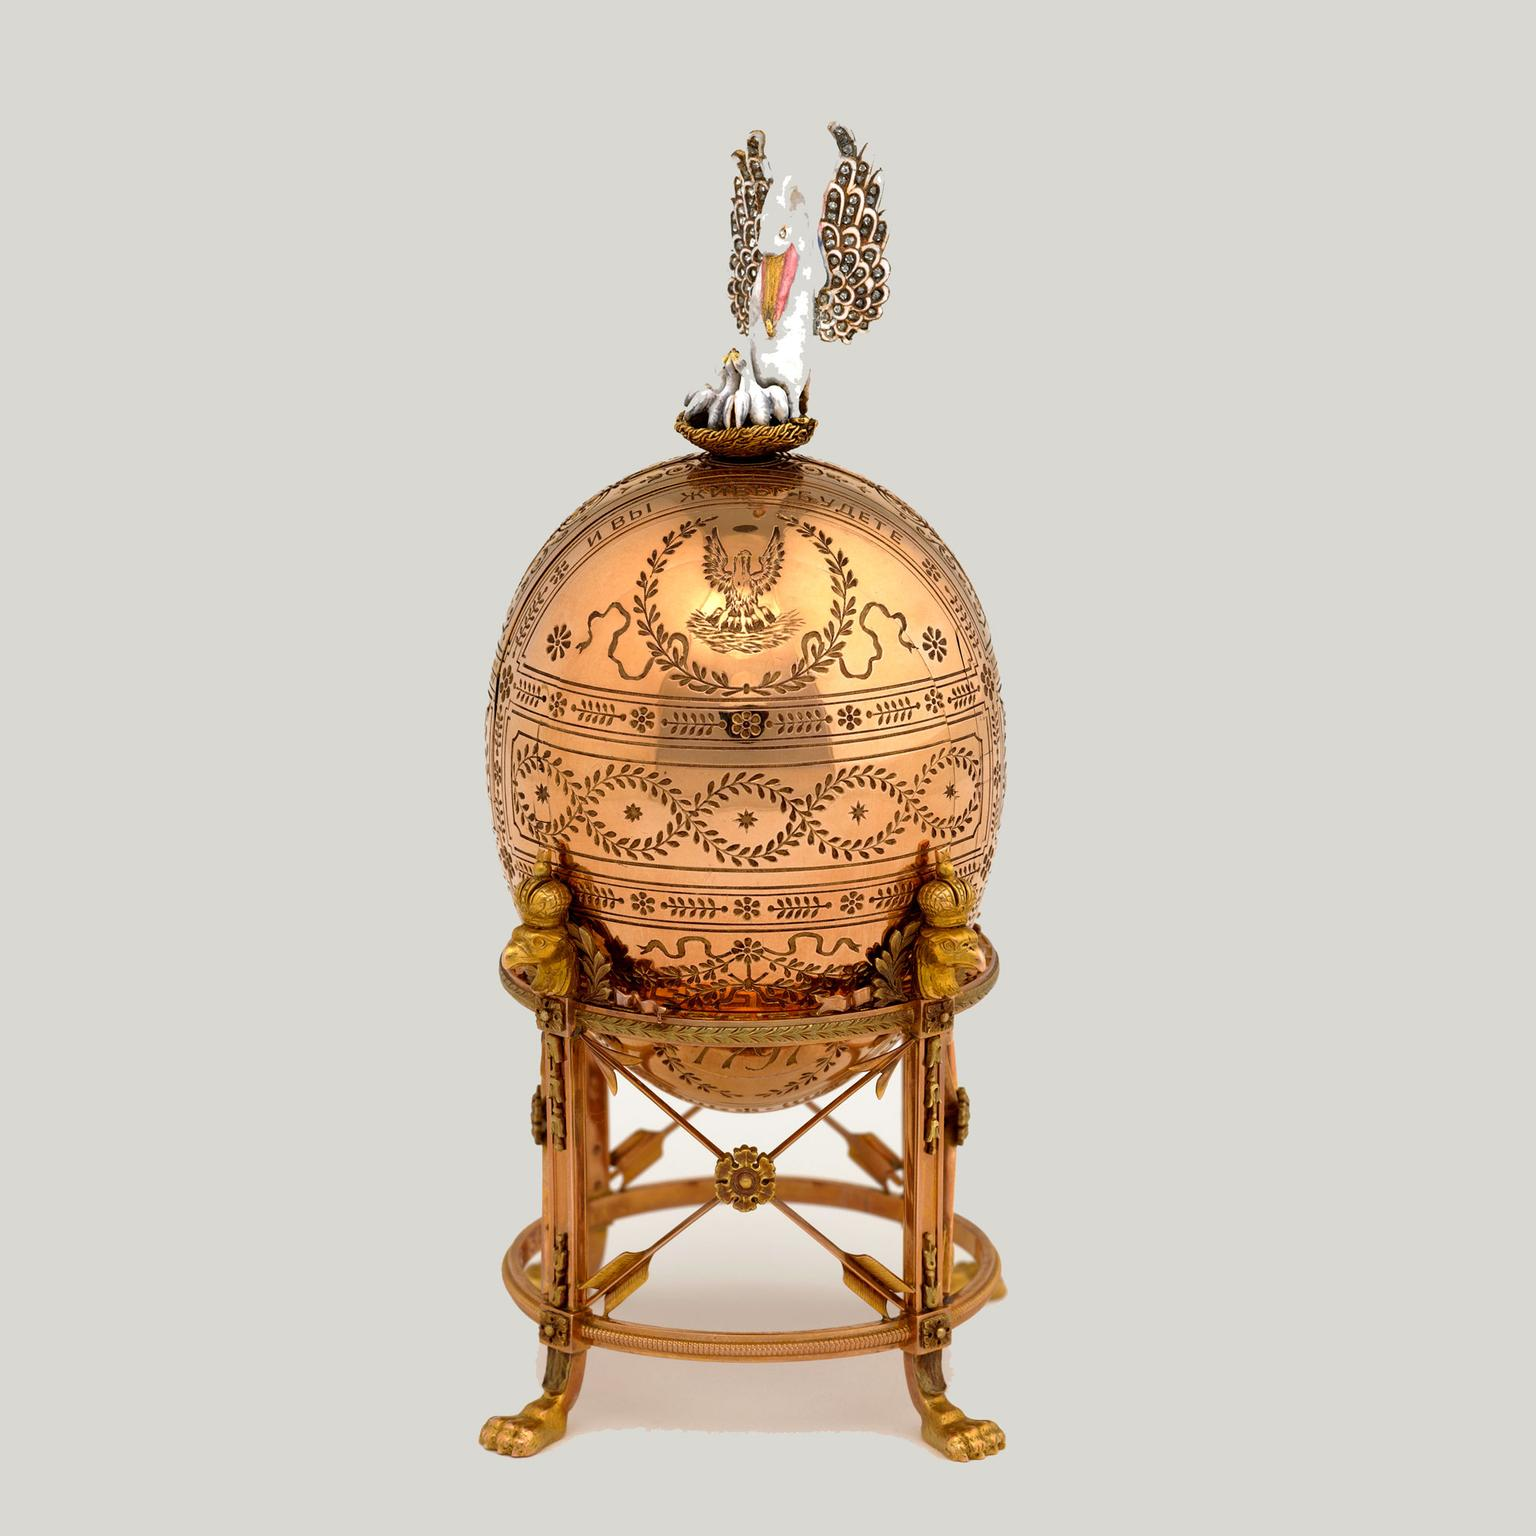 Faberge Imperial pelican Easter egg